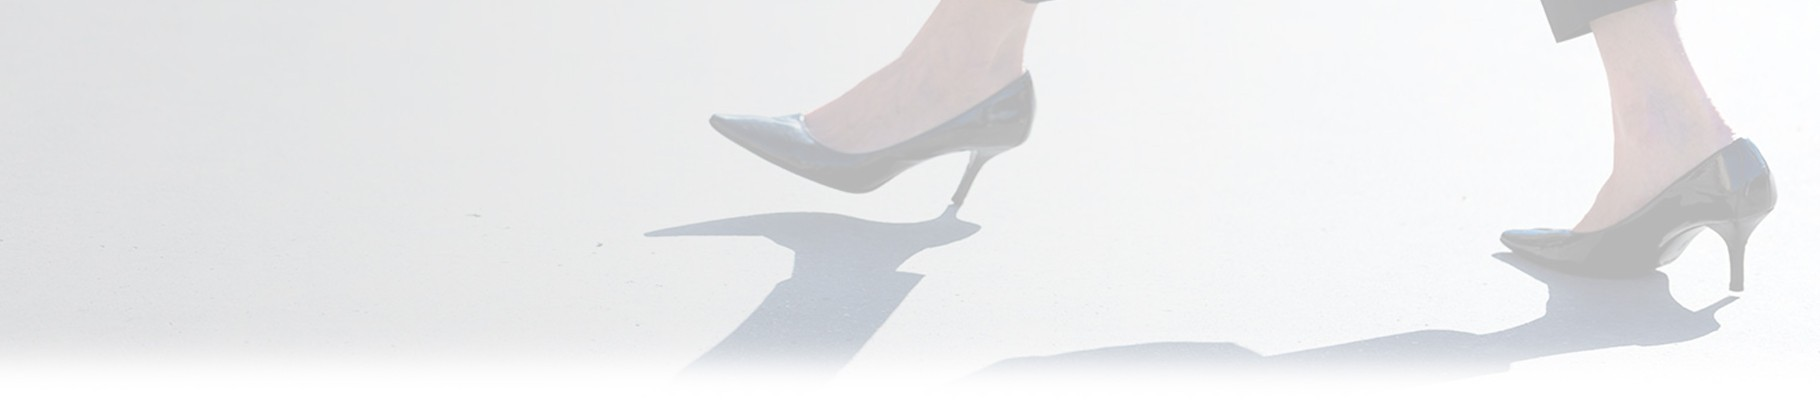 Only a pair of high-heeled shoes give security and femininity to every